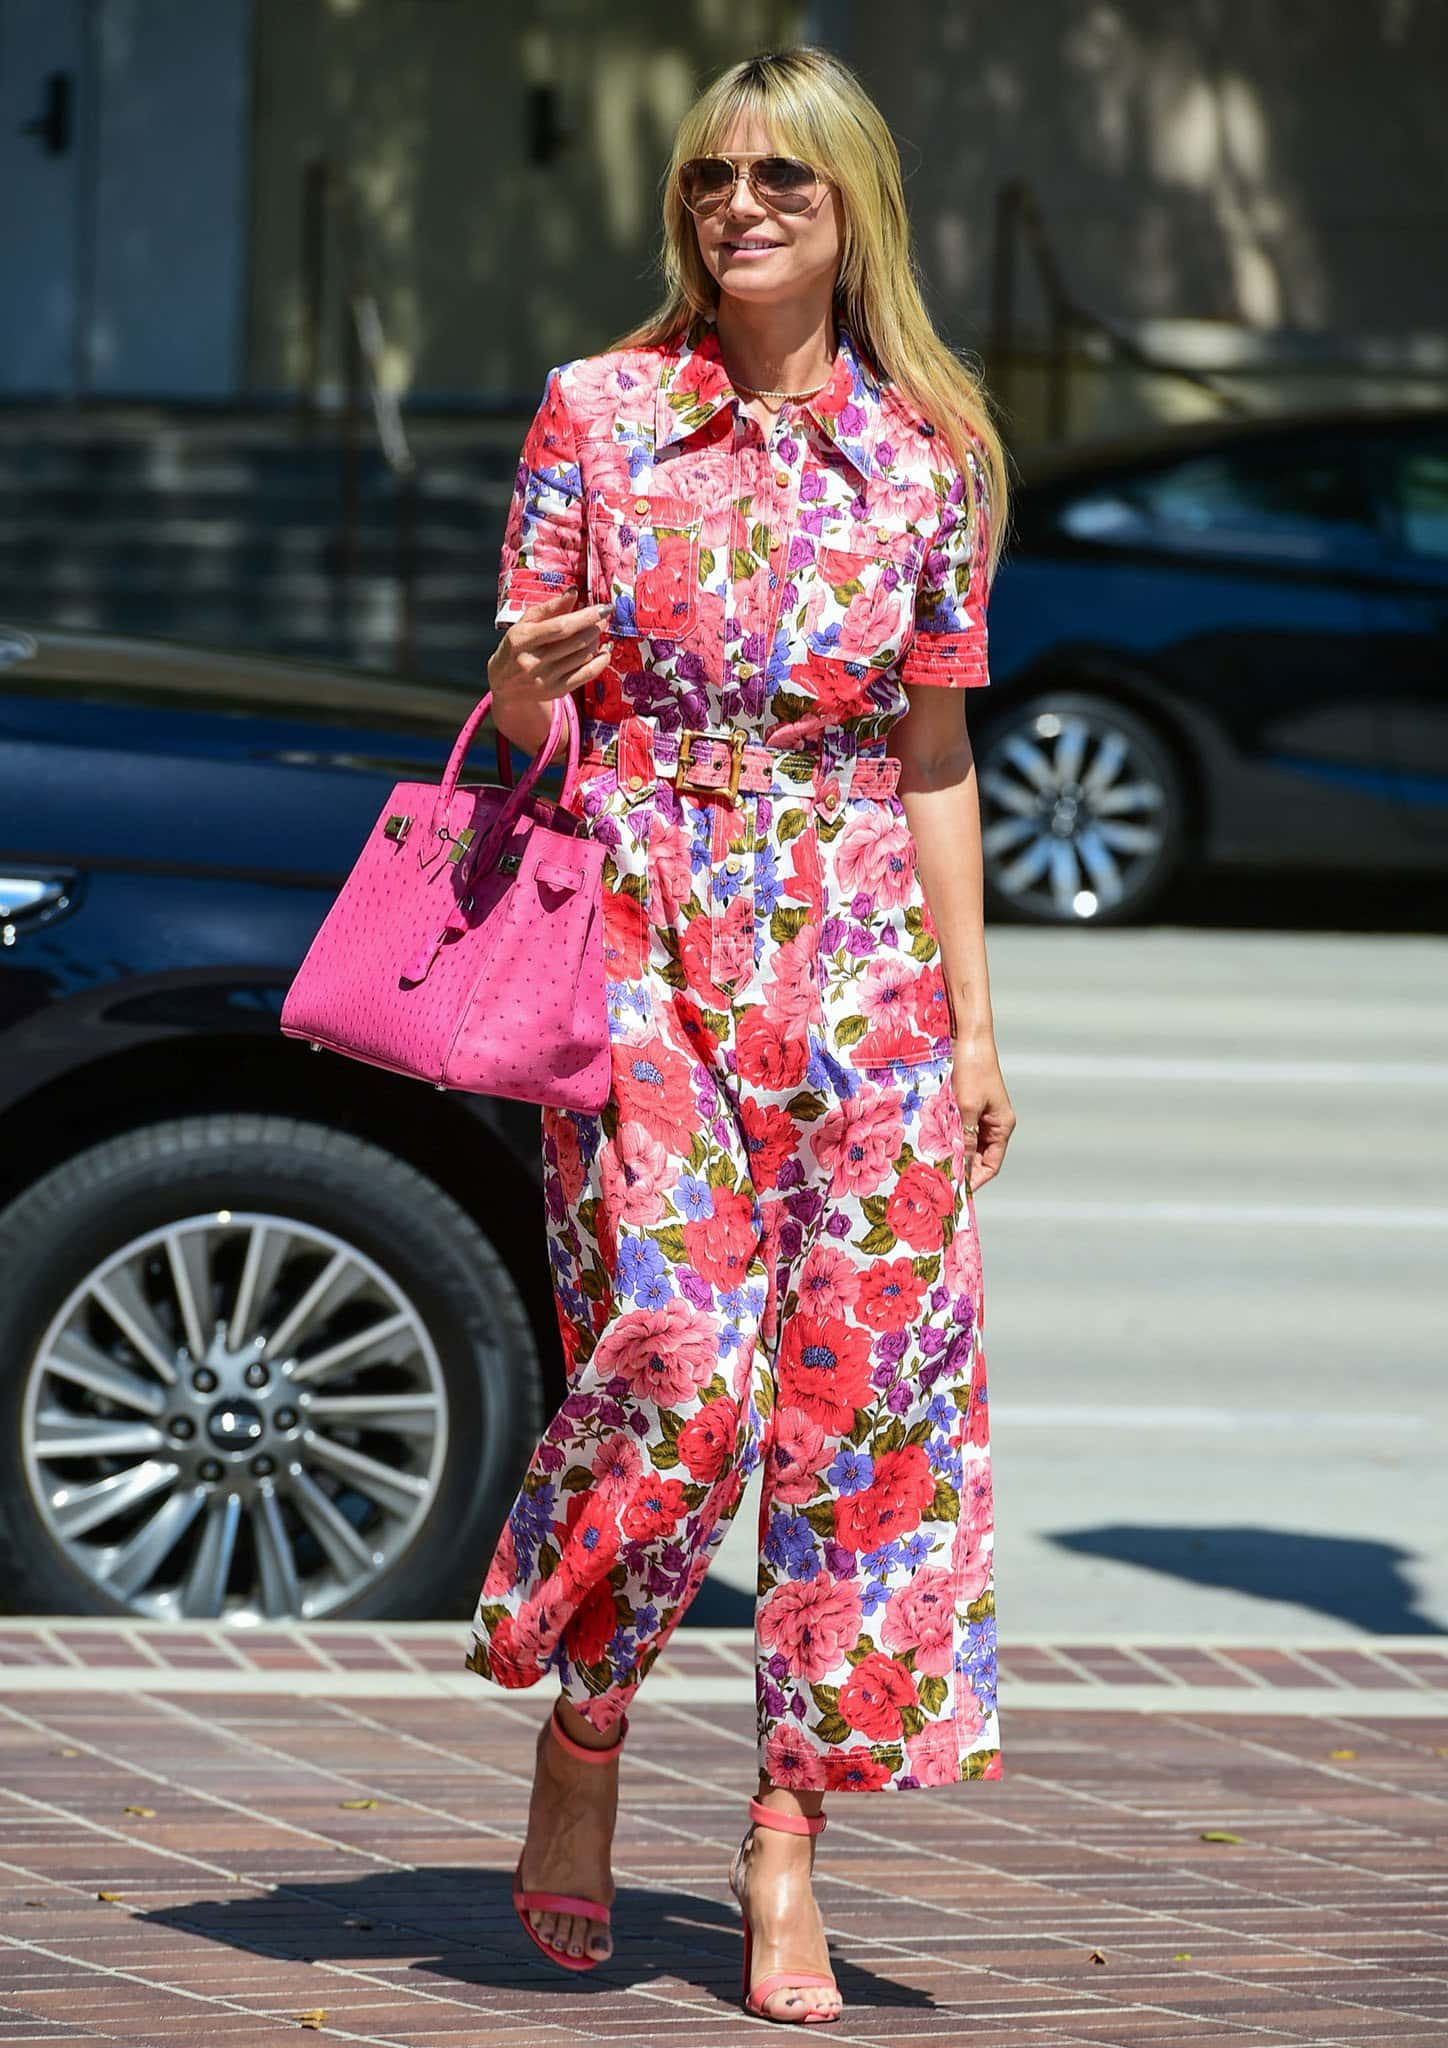 Heidi Klum goes for a girly look in Zimmermann Poppy floral-print linen jumpsuit on March 29, 2021